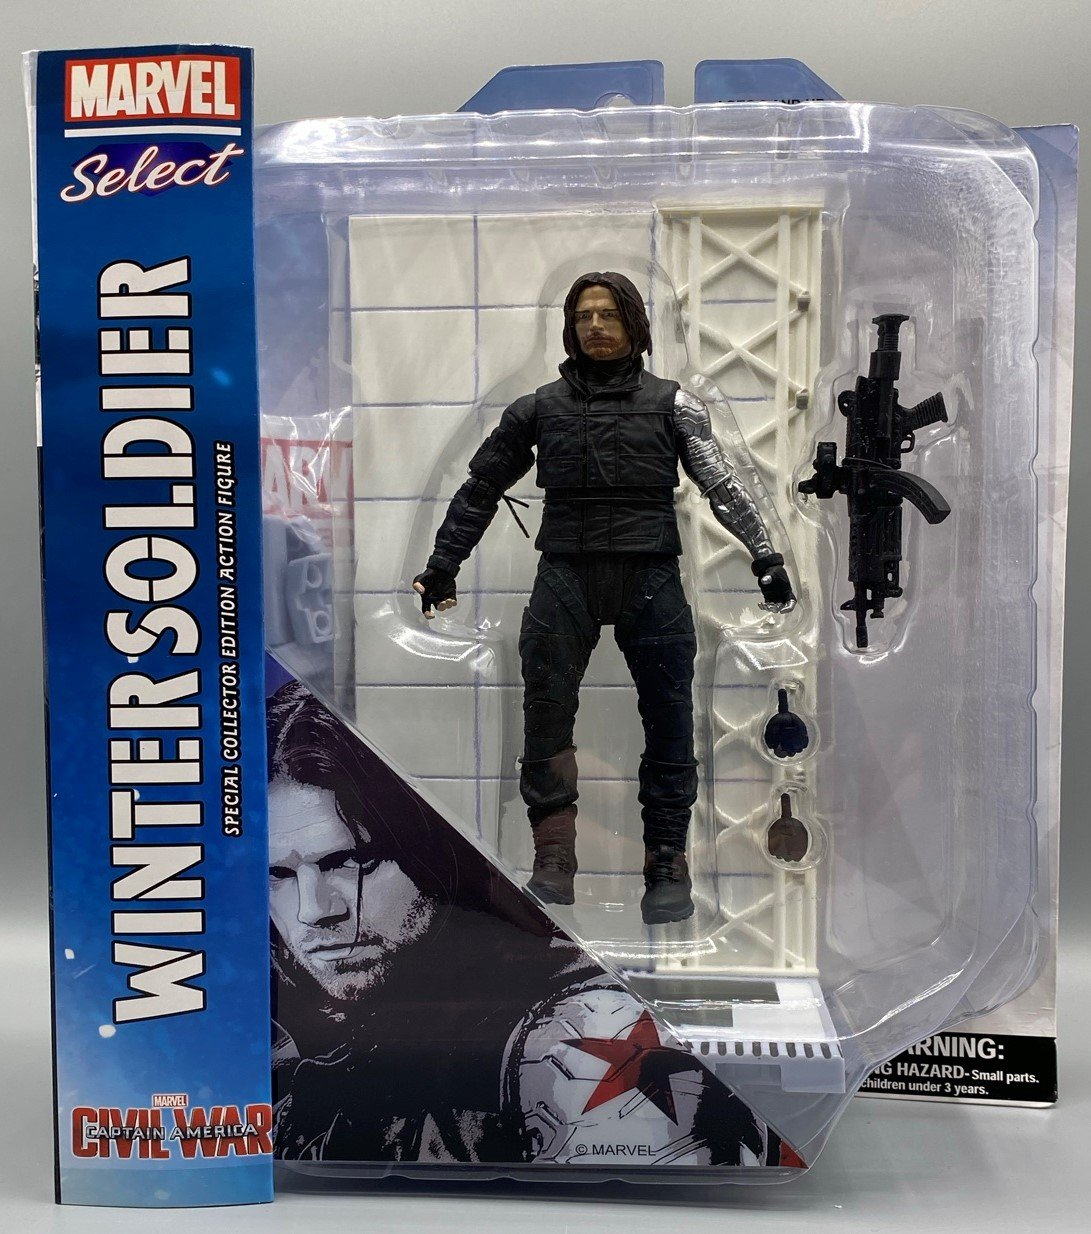 MARVEL SELECT CIVIL WAR MOVIE WINTER SOLDIER ACTION FIGURE